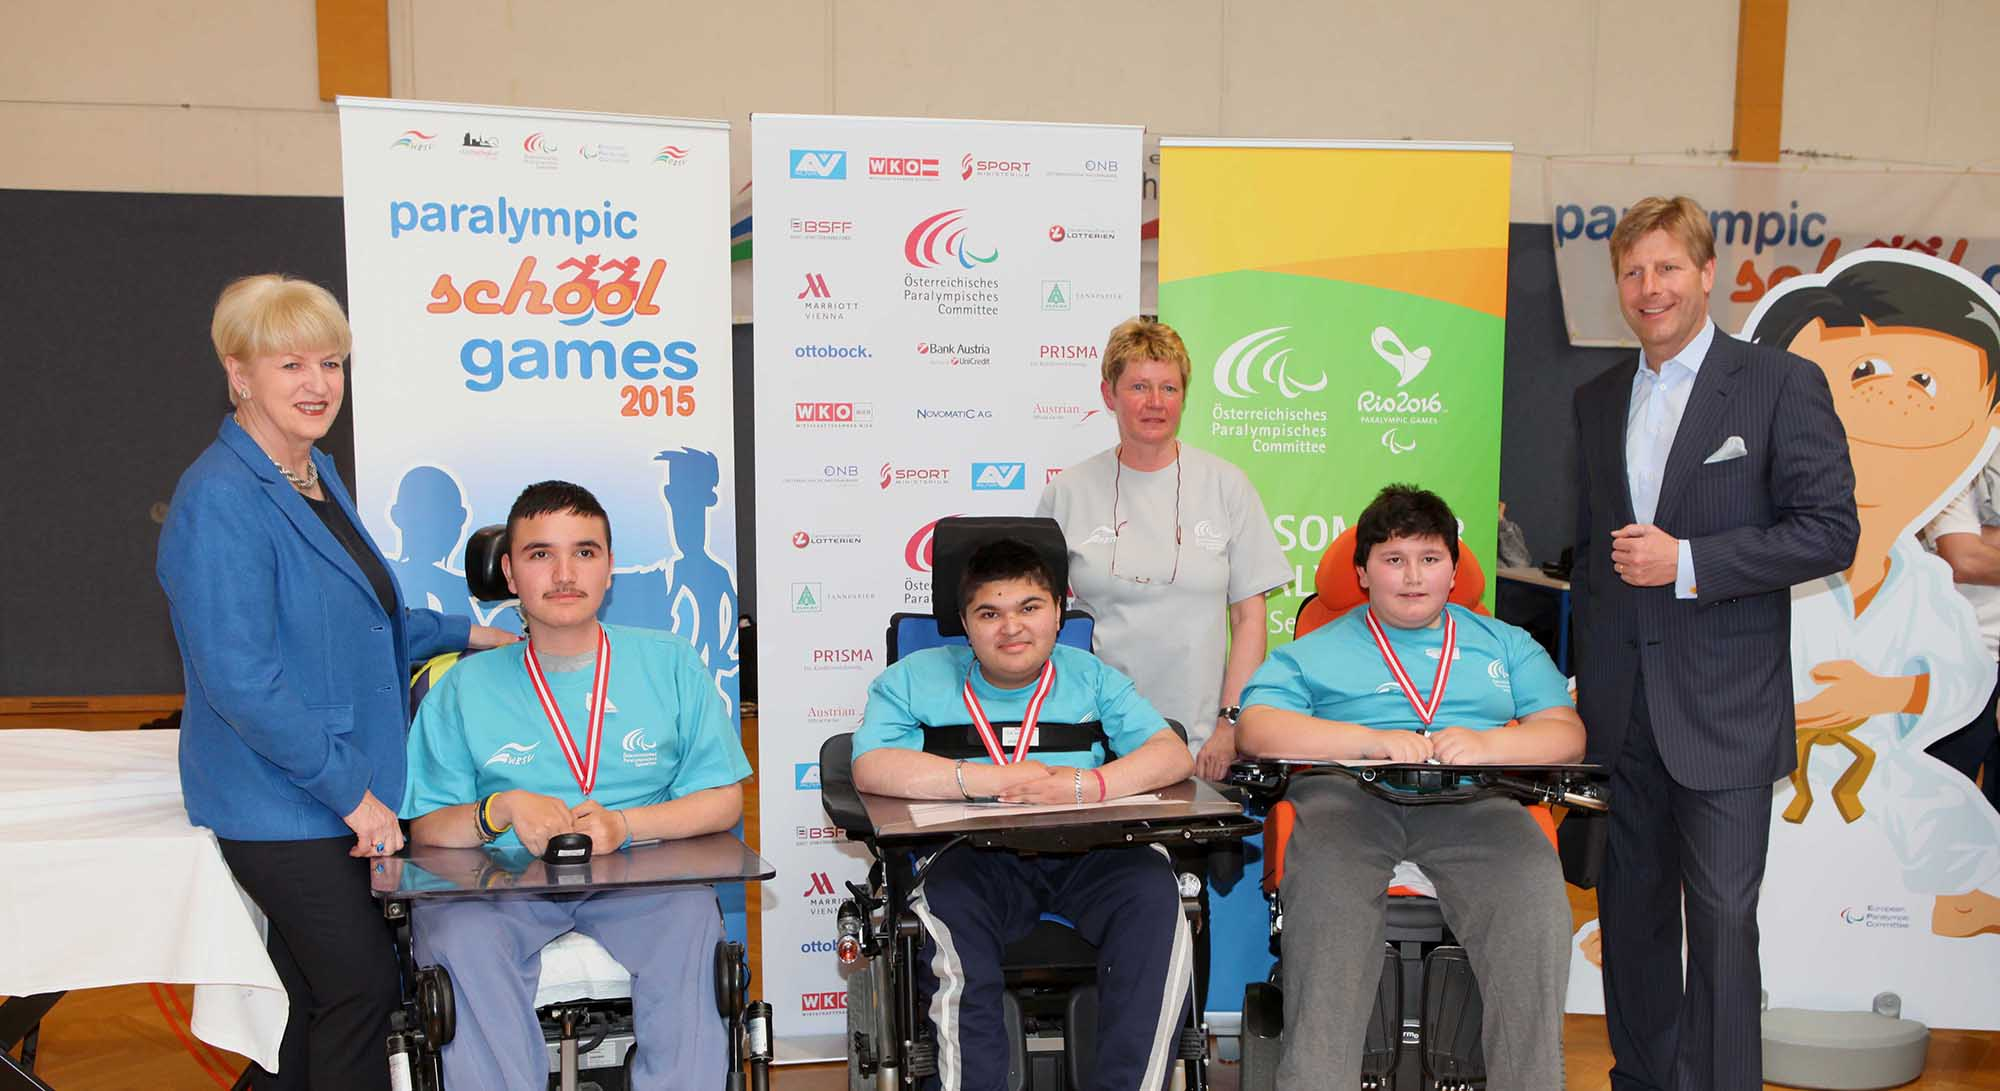 Paralympic School Games 2015